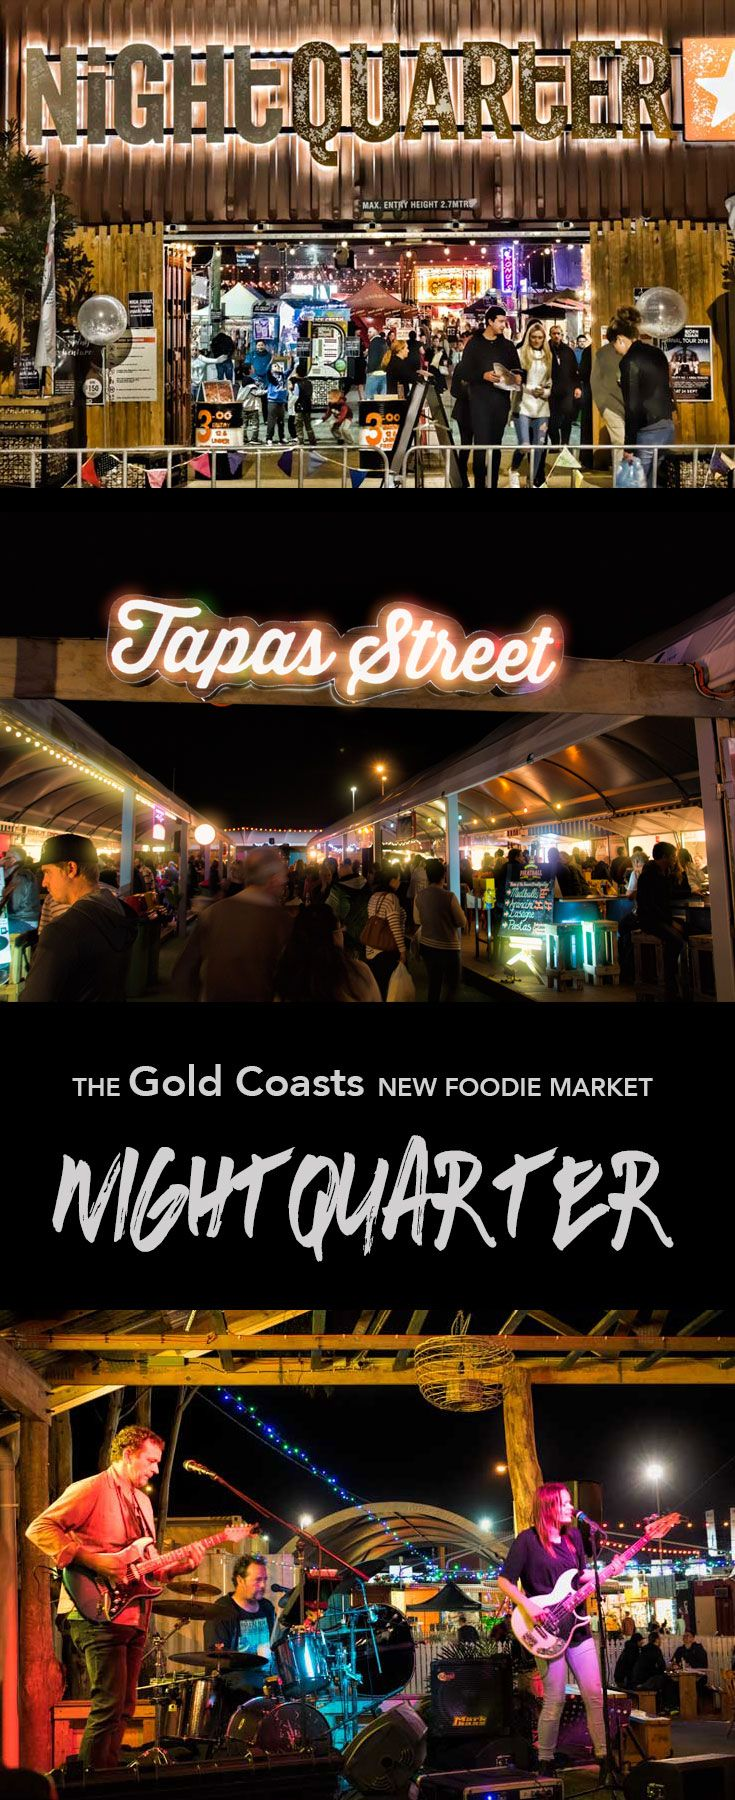 NightQuarter is a night market experience for Foodies on Australia's Gold Coast.  It's a festival every weekend complete with flavours to please every palate and with 20+…